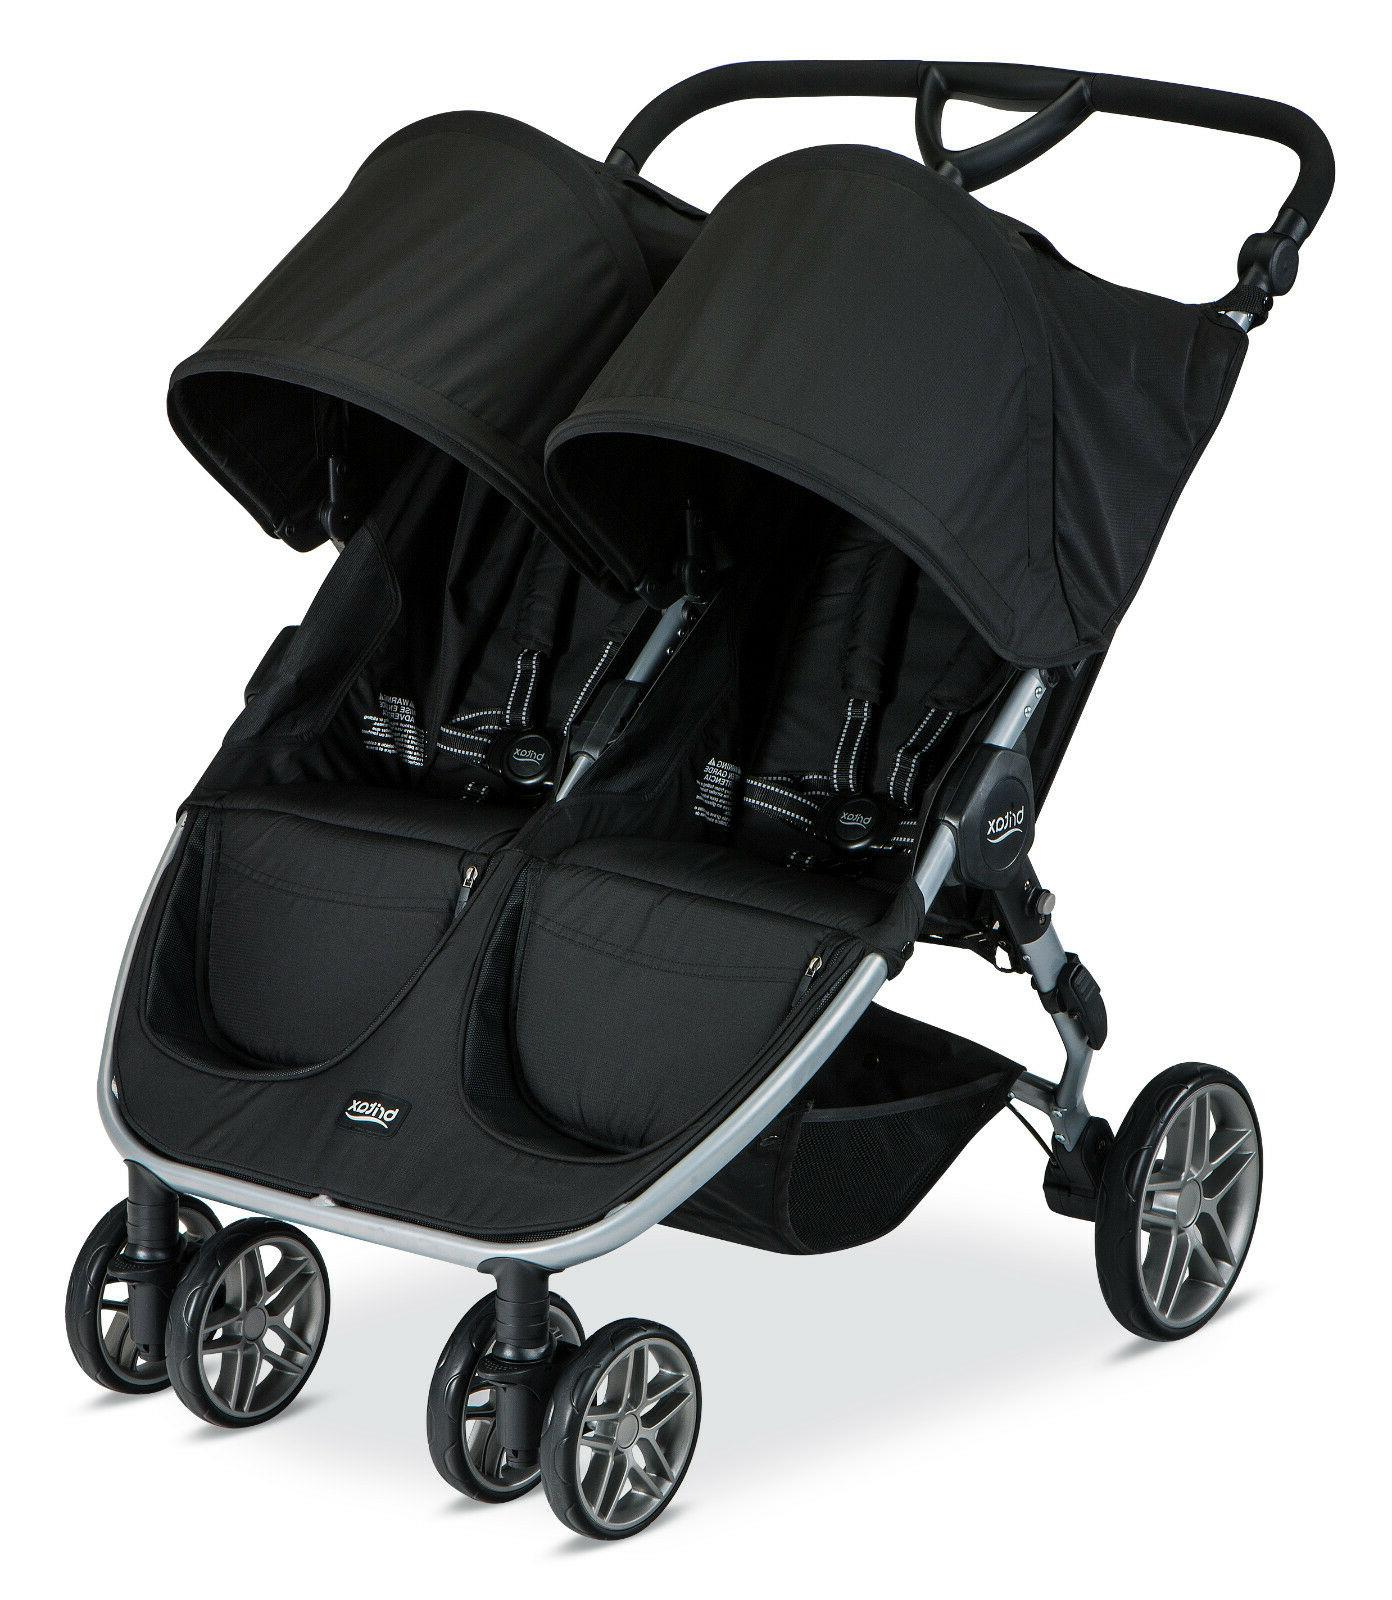 Combi Double Stroller Side By Side Britax 2016 B Agile Double Stroller Black